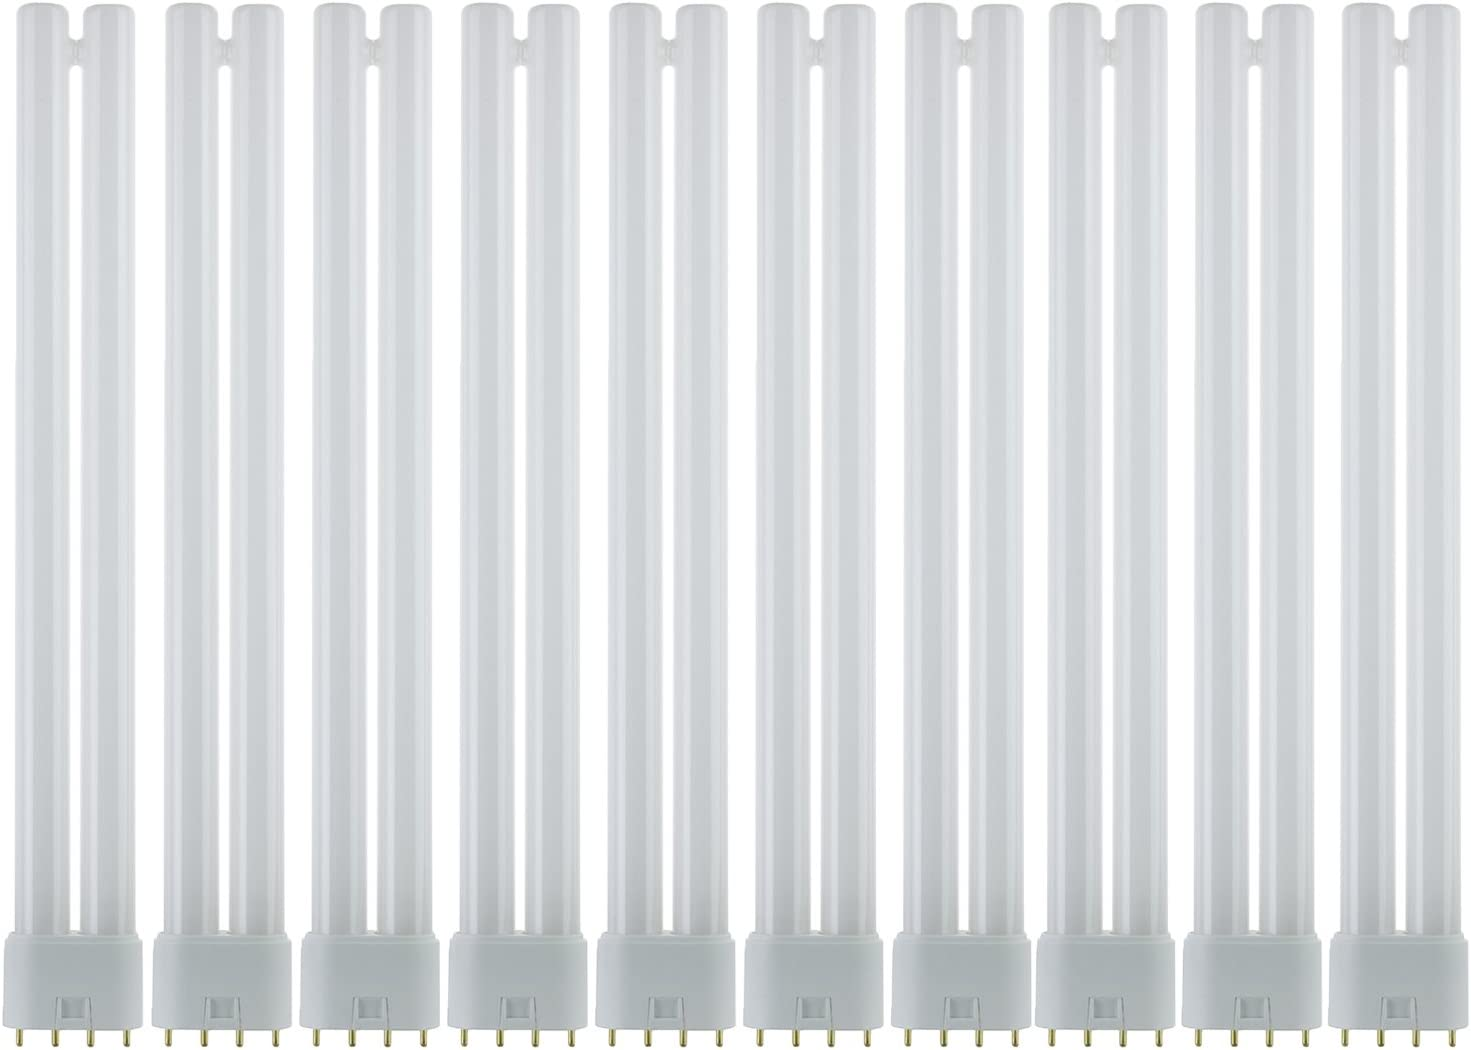 Sunlite FT24DL/830/10PK FT 24W 12 Inch/1 Foot Twin Tube Fluorescent Ceiling Light Fixtures, 4-Pin (2G11) Base, 3000K Warm White, 10 Pack, 3000K-Warm, 10 Piece